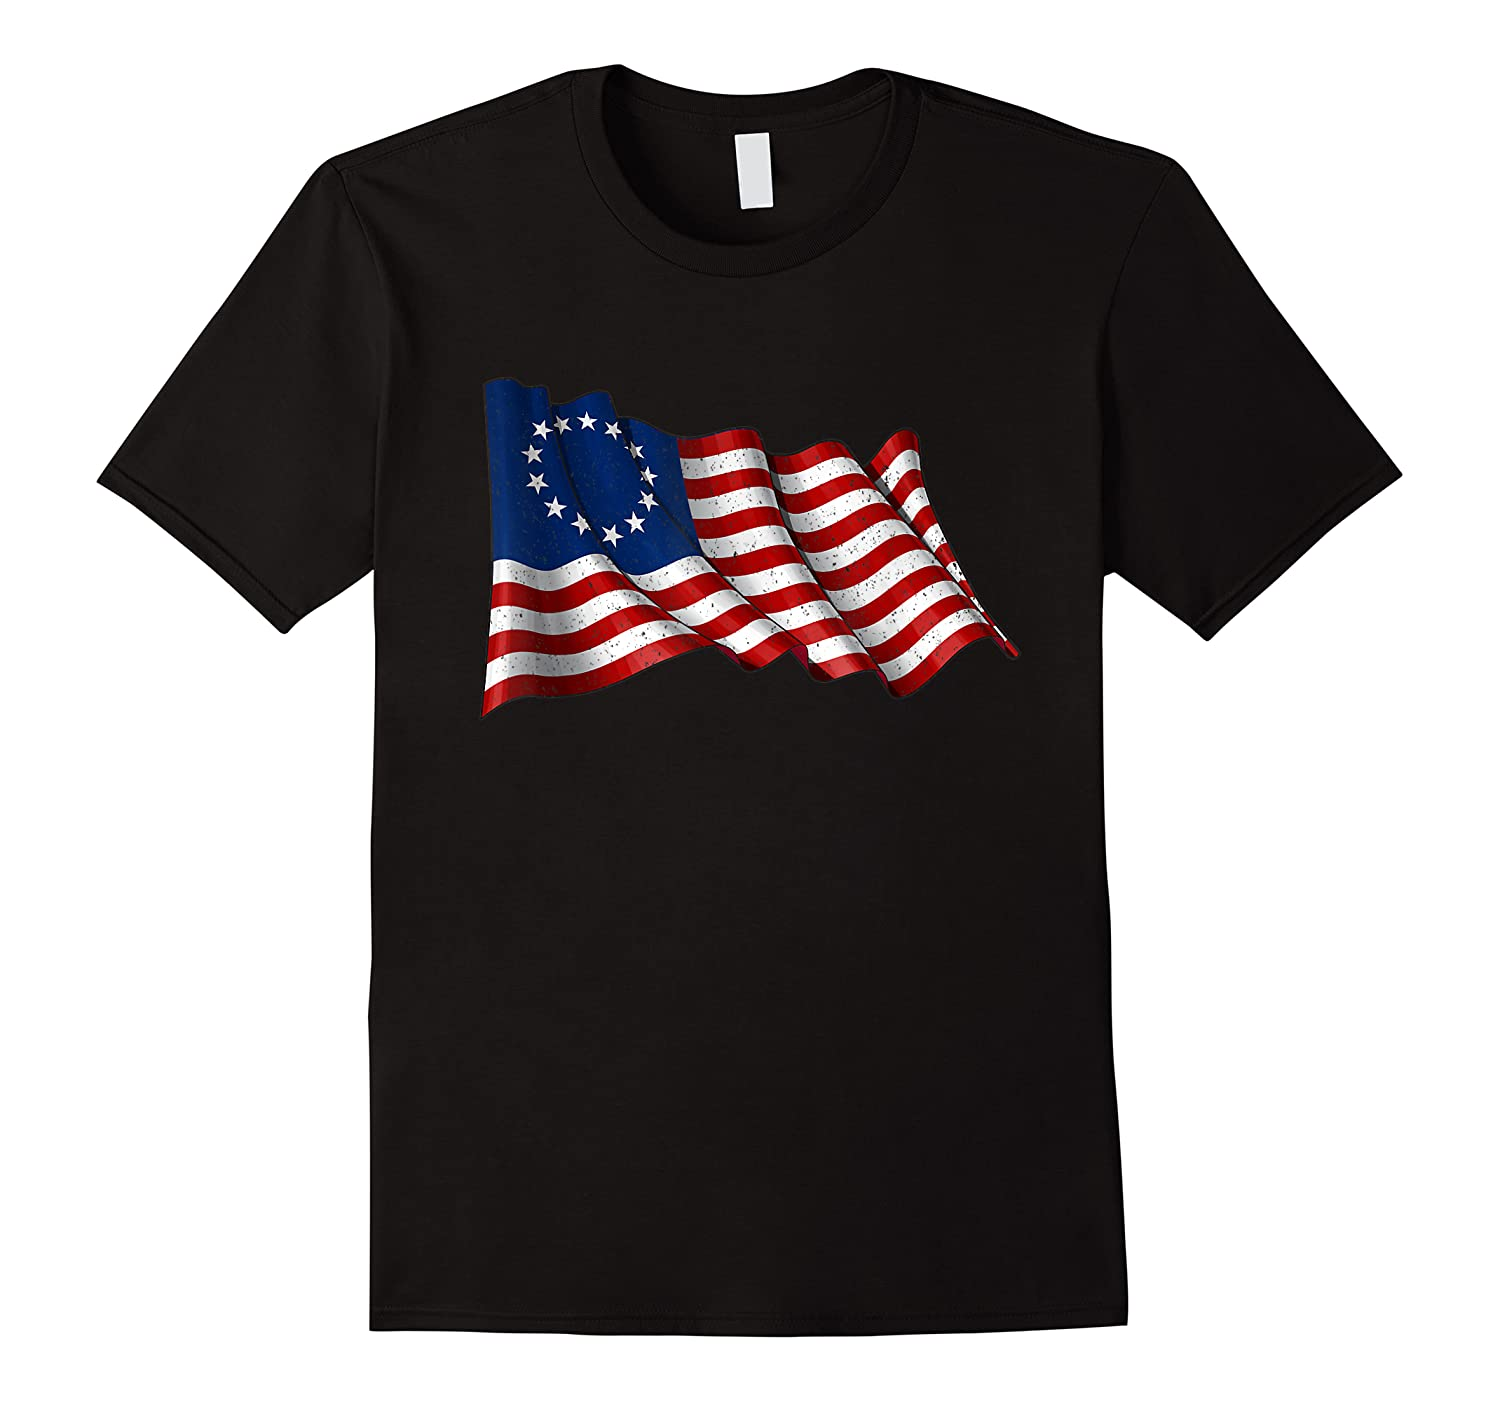 America Betsy Ross Flag 1776 Vintage Distressed T Shirt